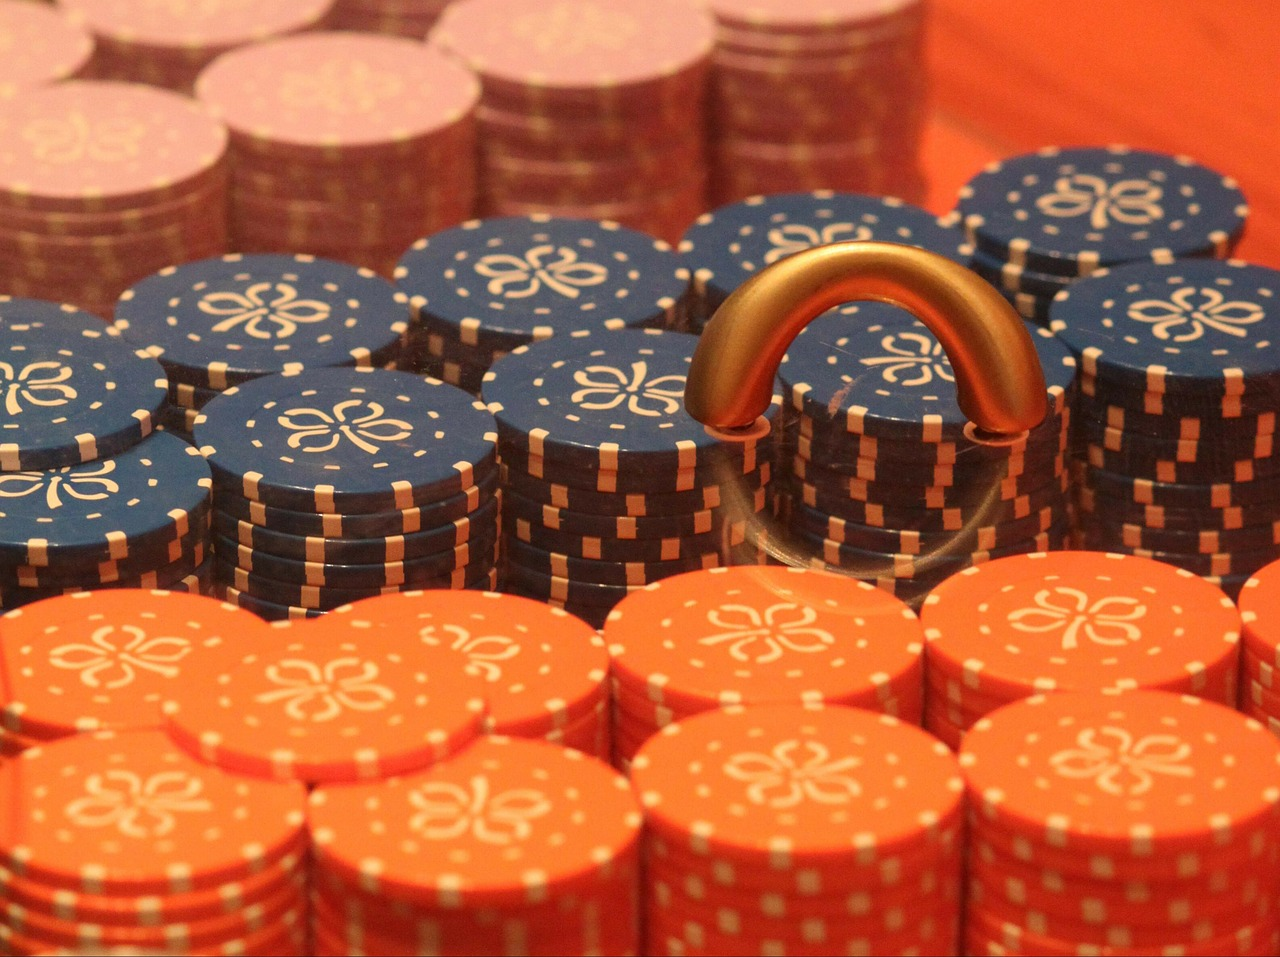 most expensive poker chips